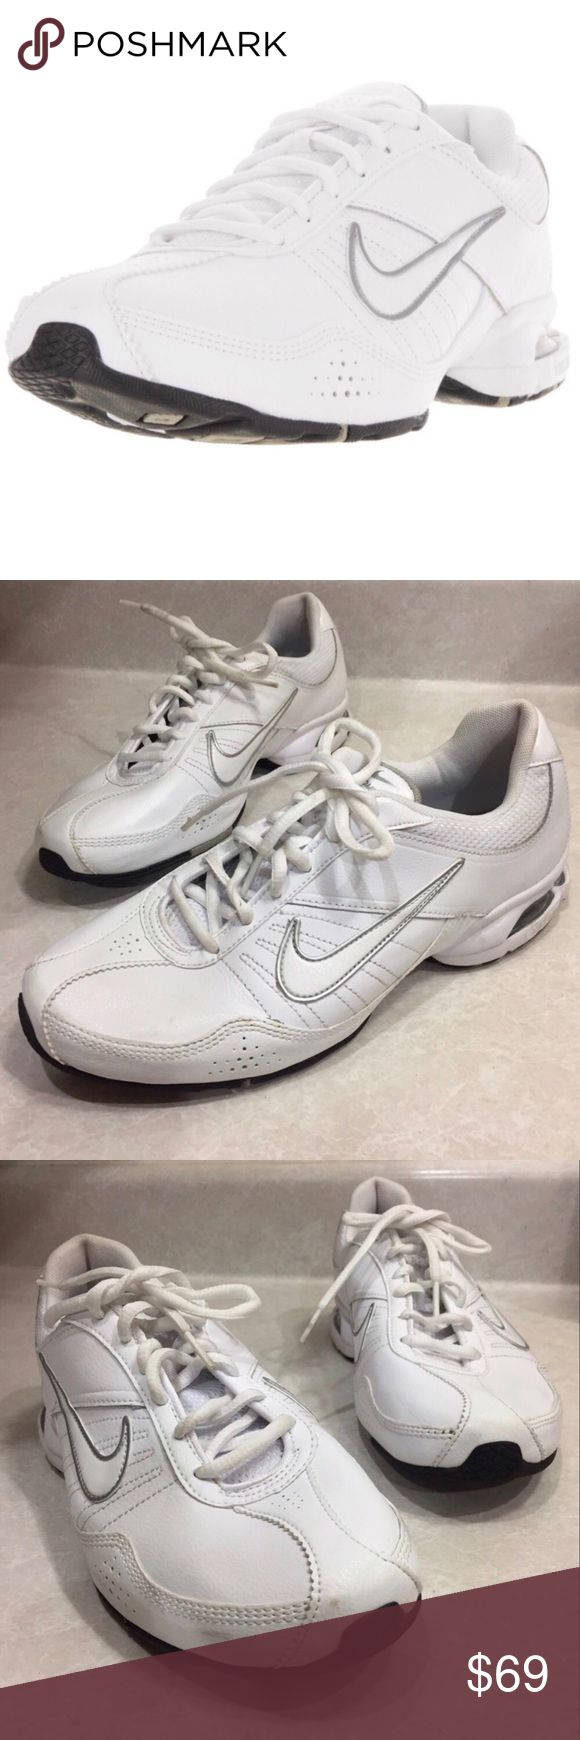 NIKE Lea white gray athletic shoes size 9.5 Classic white Nike kicks. Clean and barely worn. Condition is as seen. Some tiny stains but barely noticeable. Nike Shoes Athletic Shoes